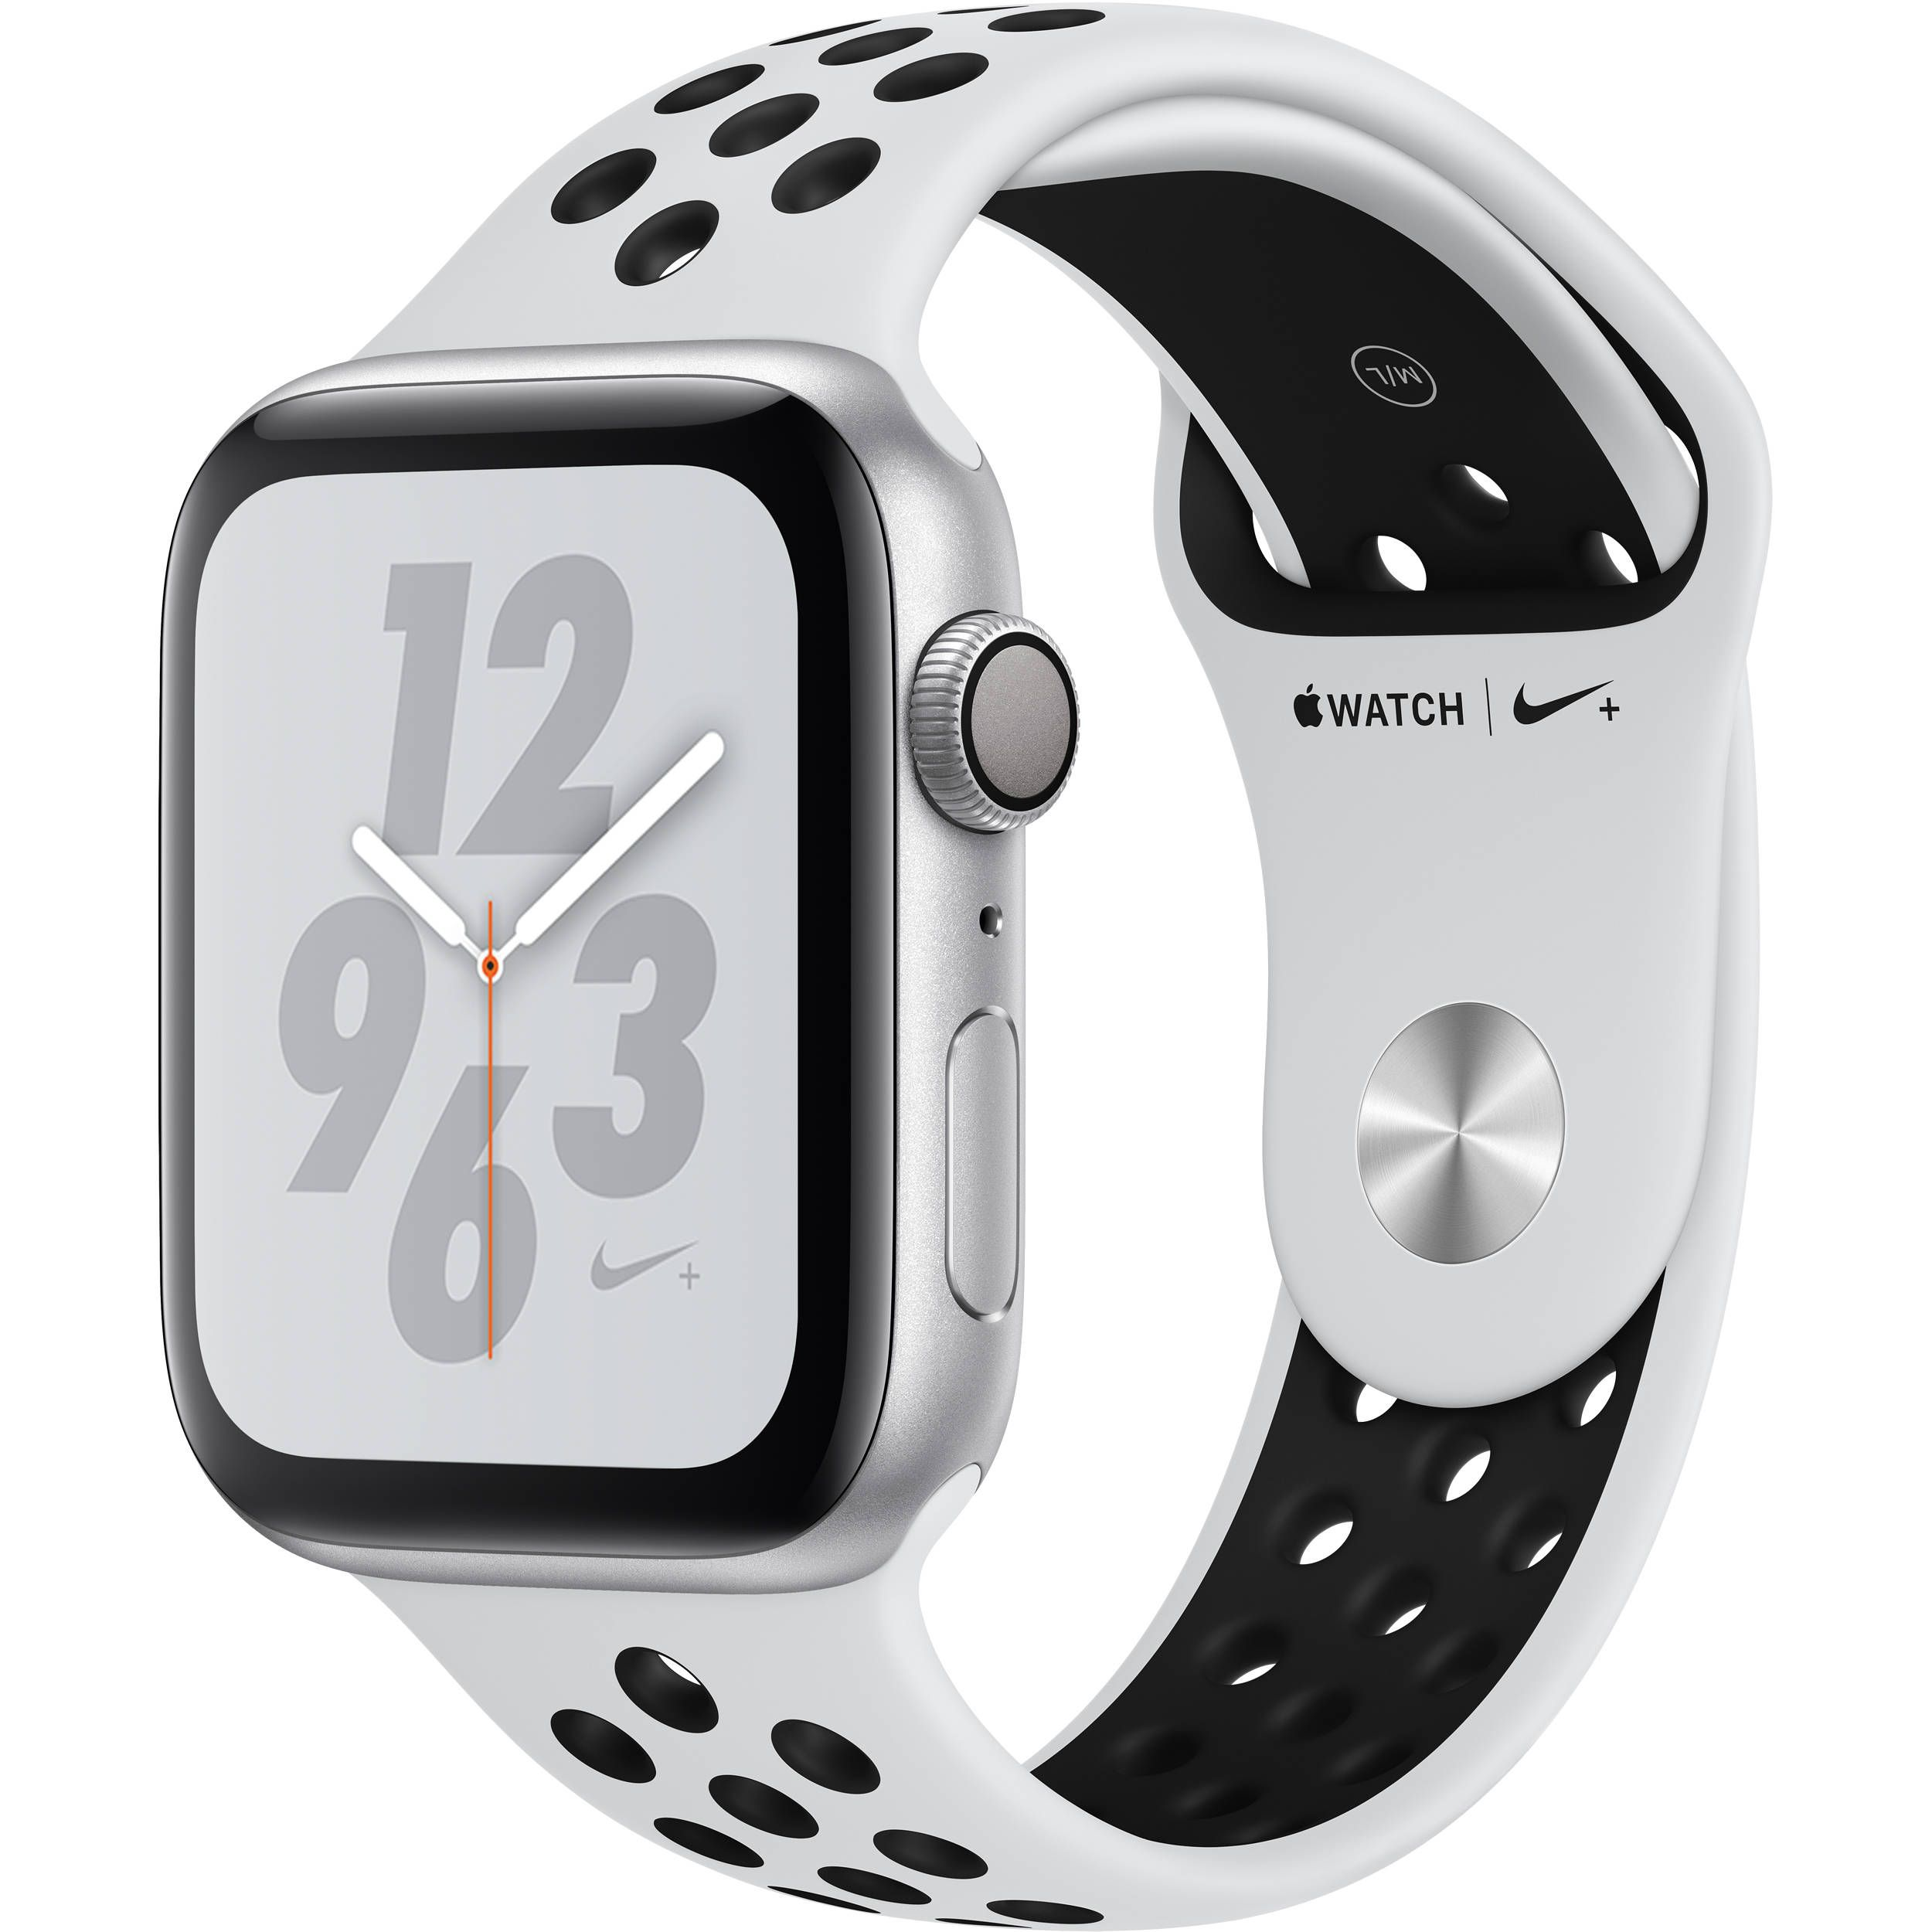 Image Result For Apple Watch Series 4 Nike Apple Watch Nike Buy Apple Watch Apple Watch